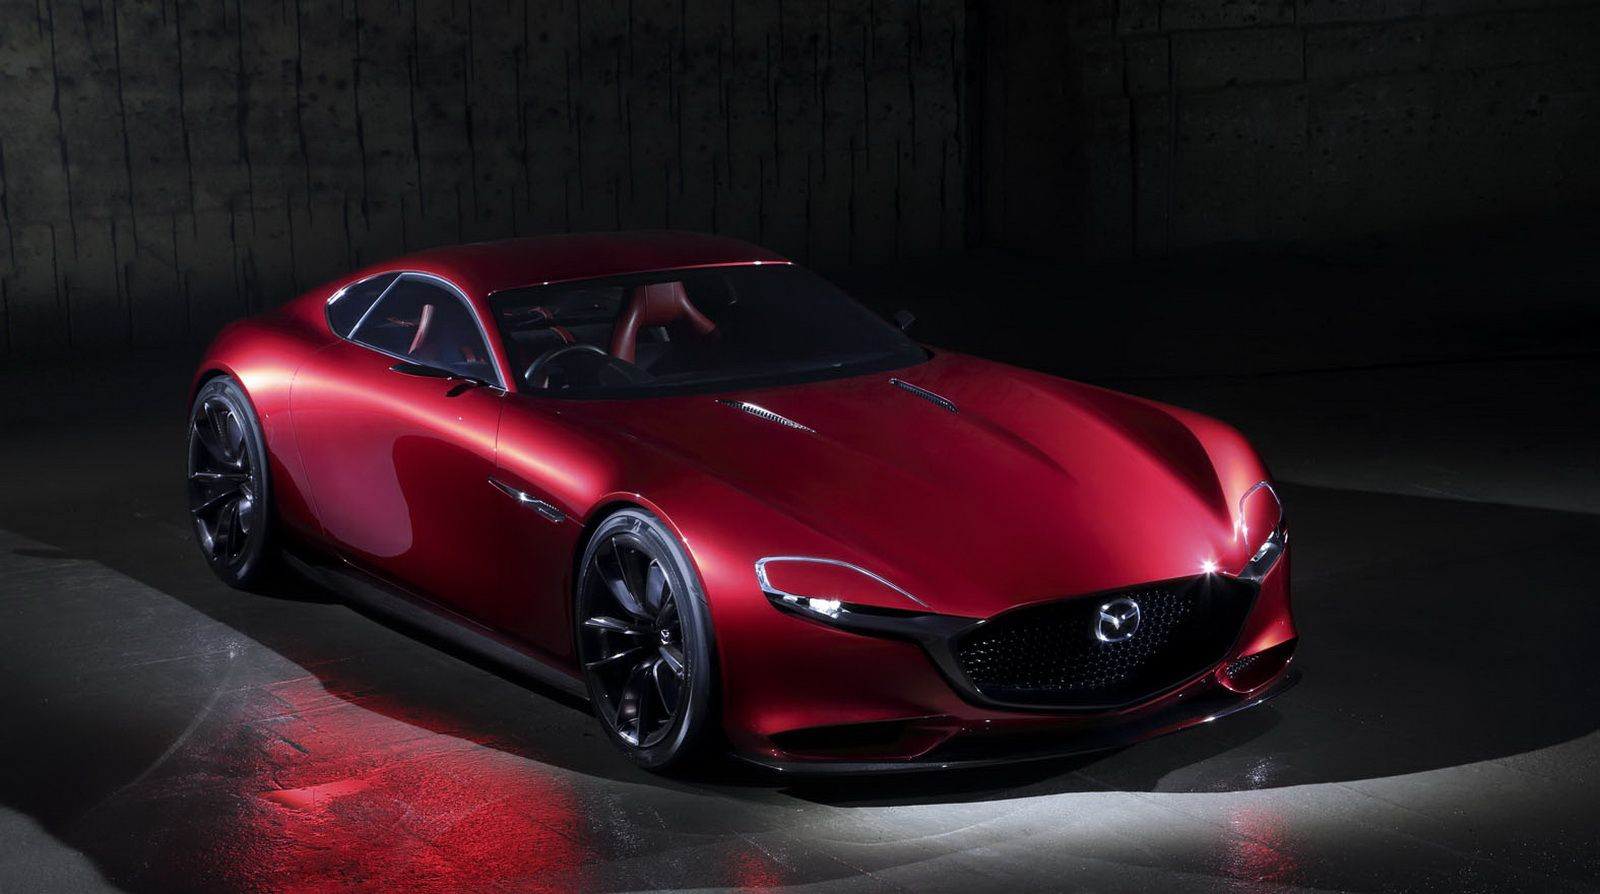 A new rotary engine will allegedly be unveiled in 2017 by mazda to power its new